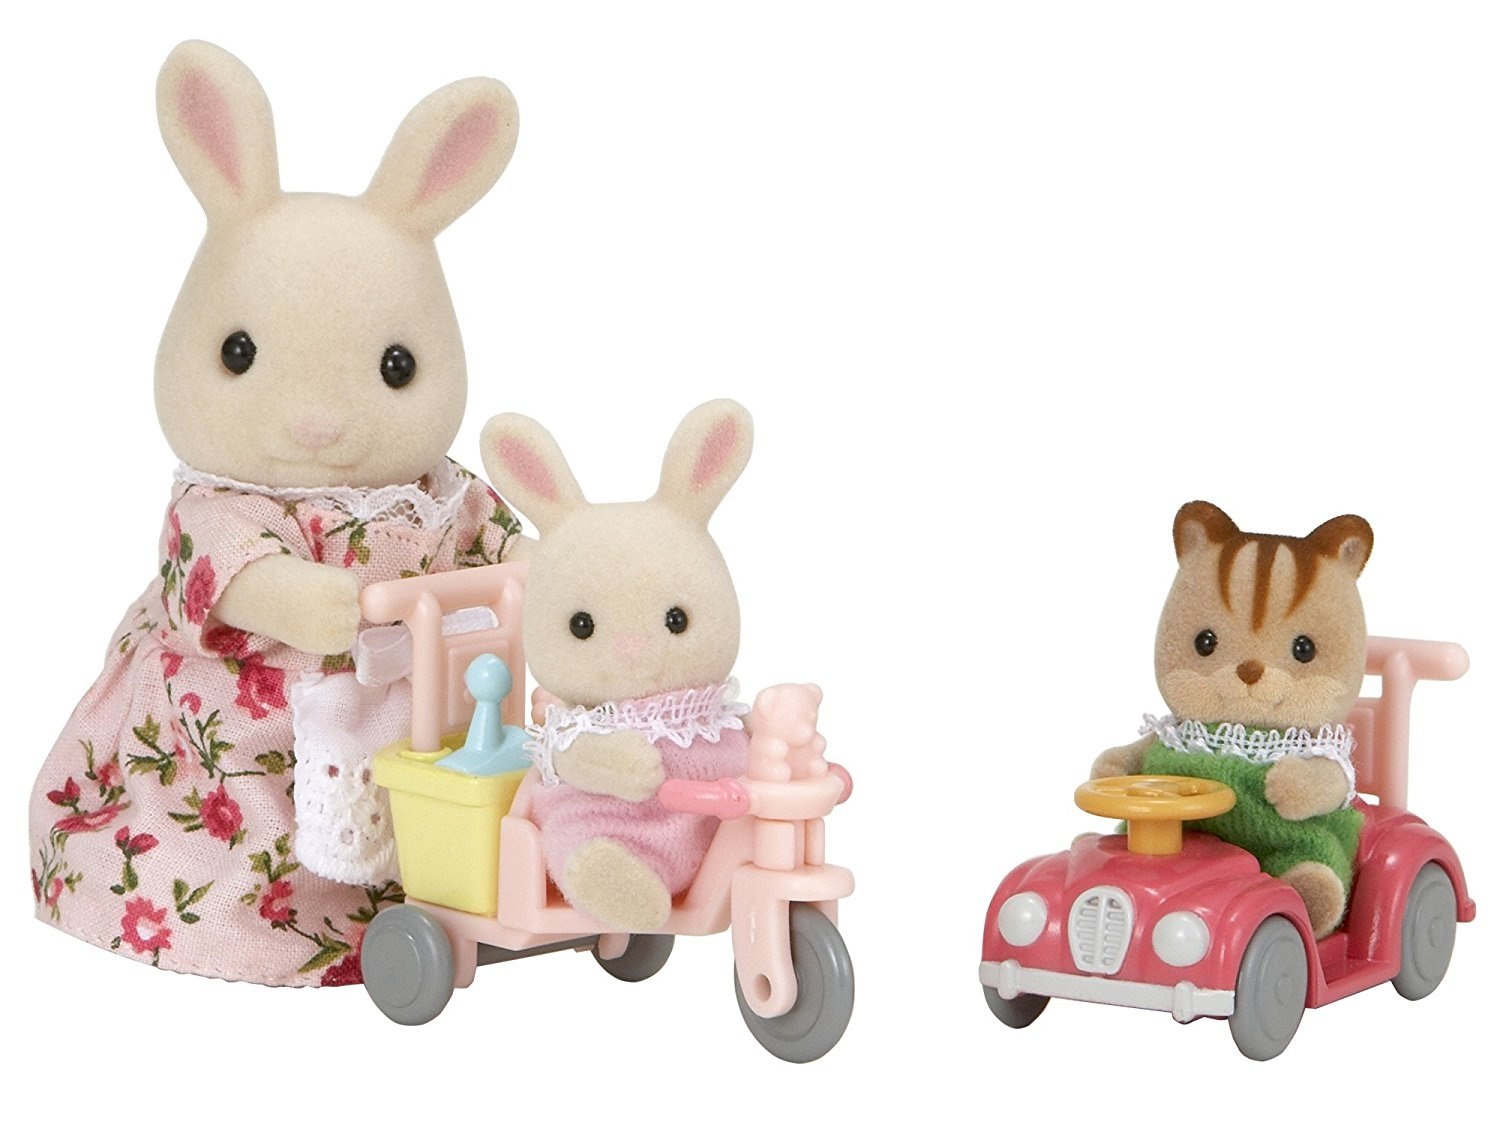 Babies Ride And Play Sylvanian Families Europe Action Figure Walnut Squirrel Family Henry The Milk Rabbit Baby Ambrose Love To Along On Their Tricycles Toys Through Beautiful